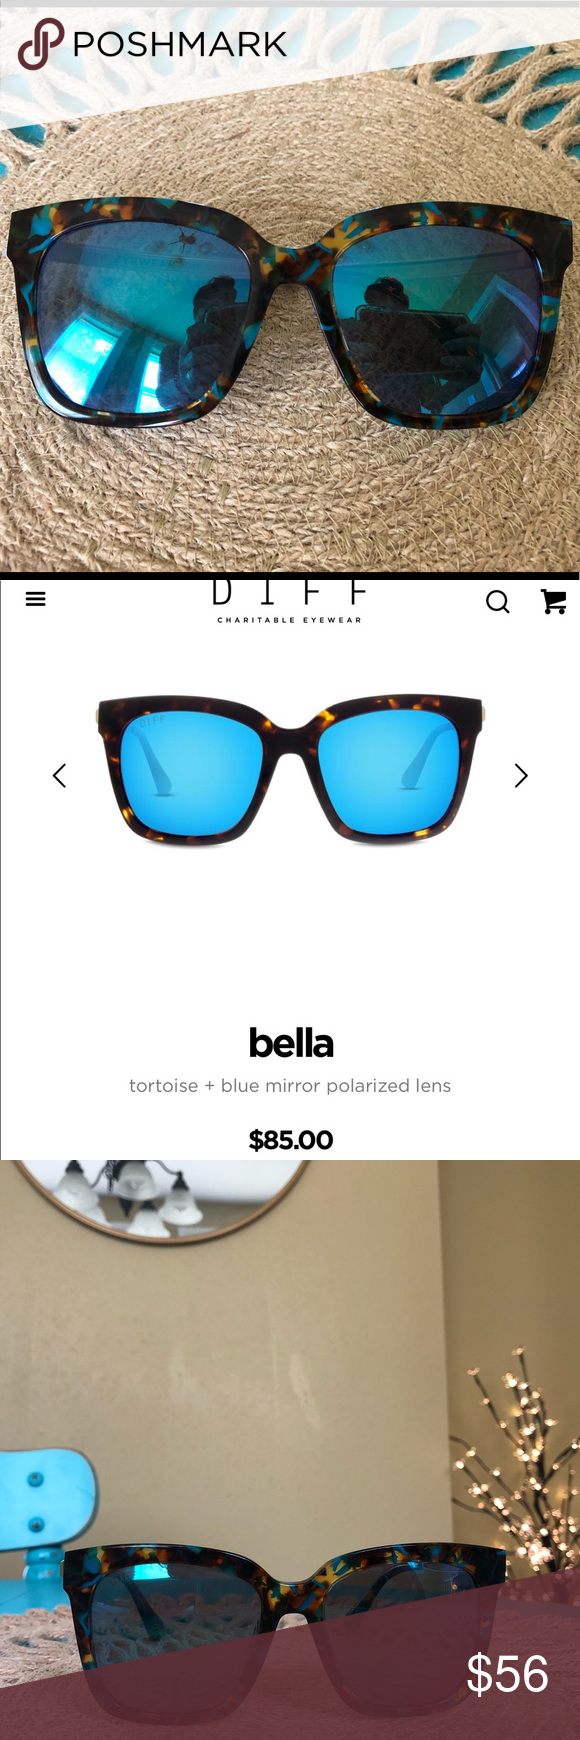 23c649c514b DIFF Bella tortoise + blue mirror polarized lens Selling my DIFF polarized  sunnies. I bought